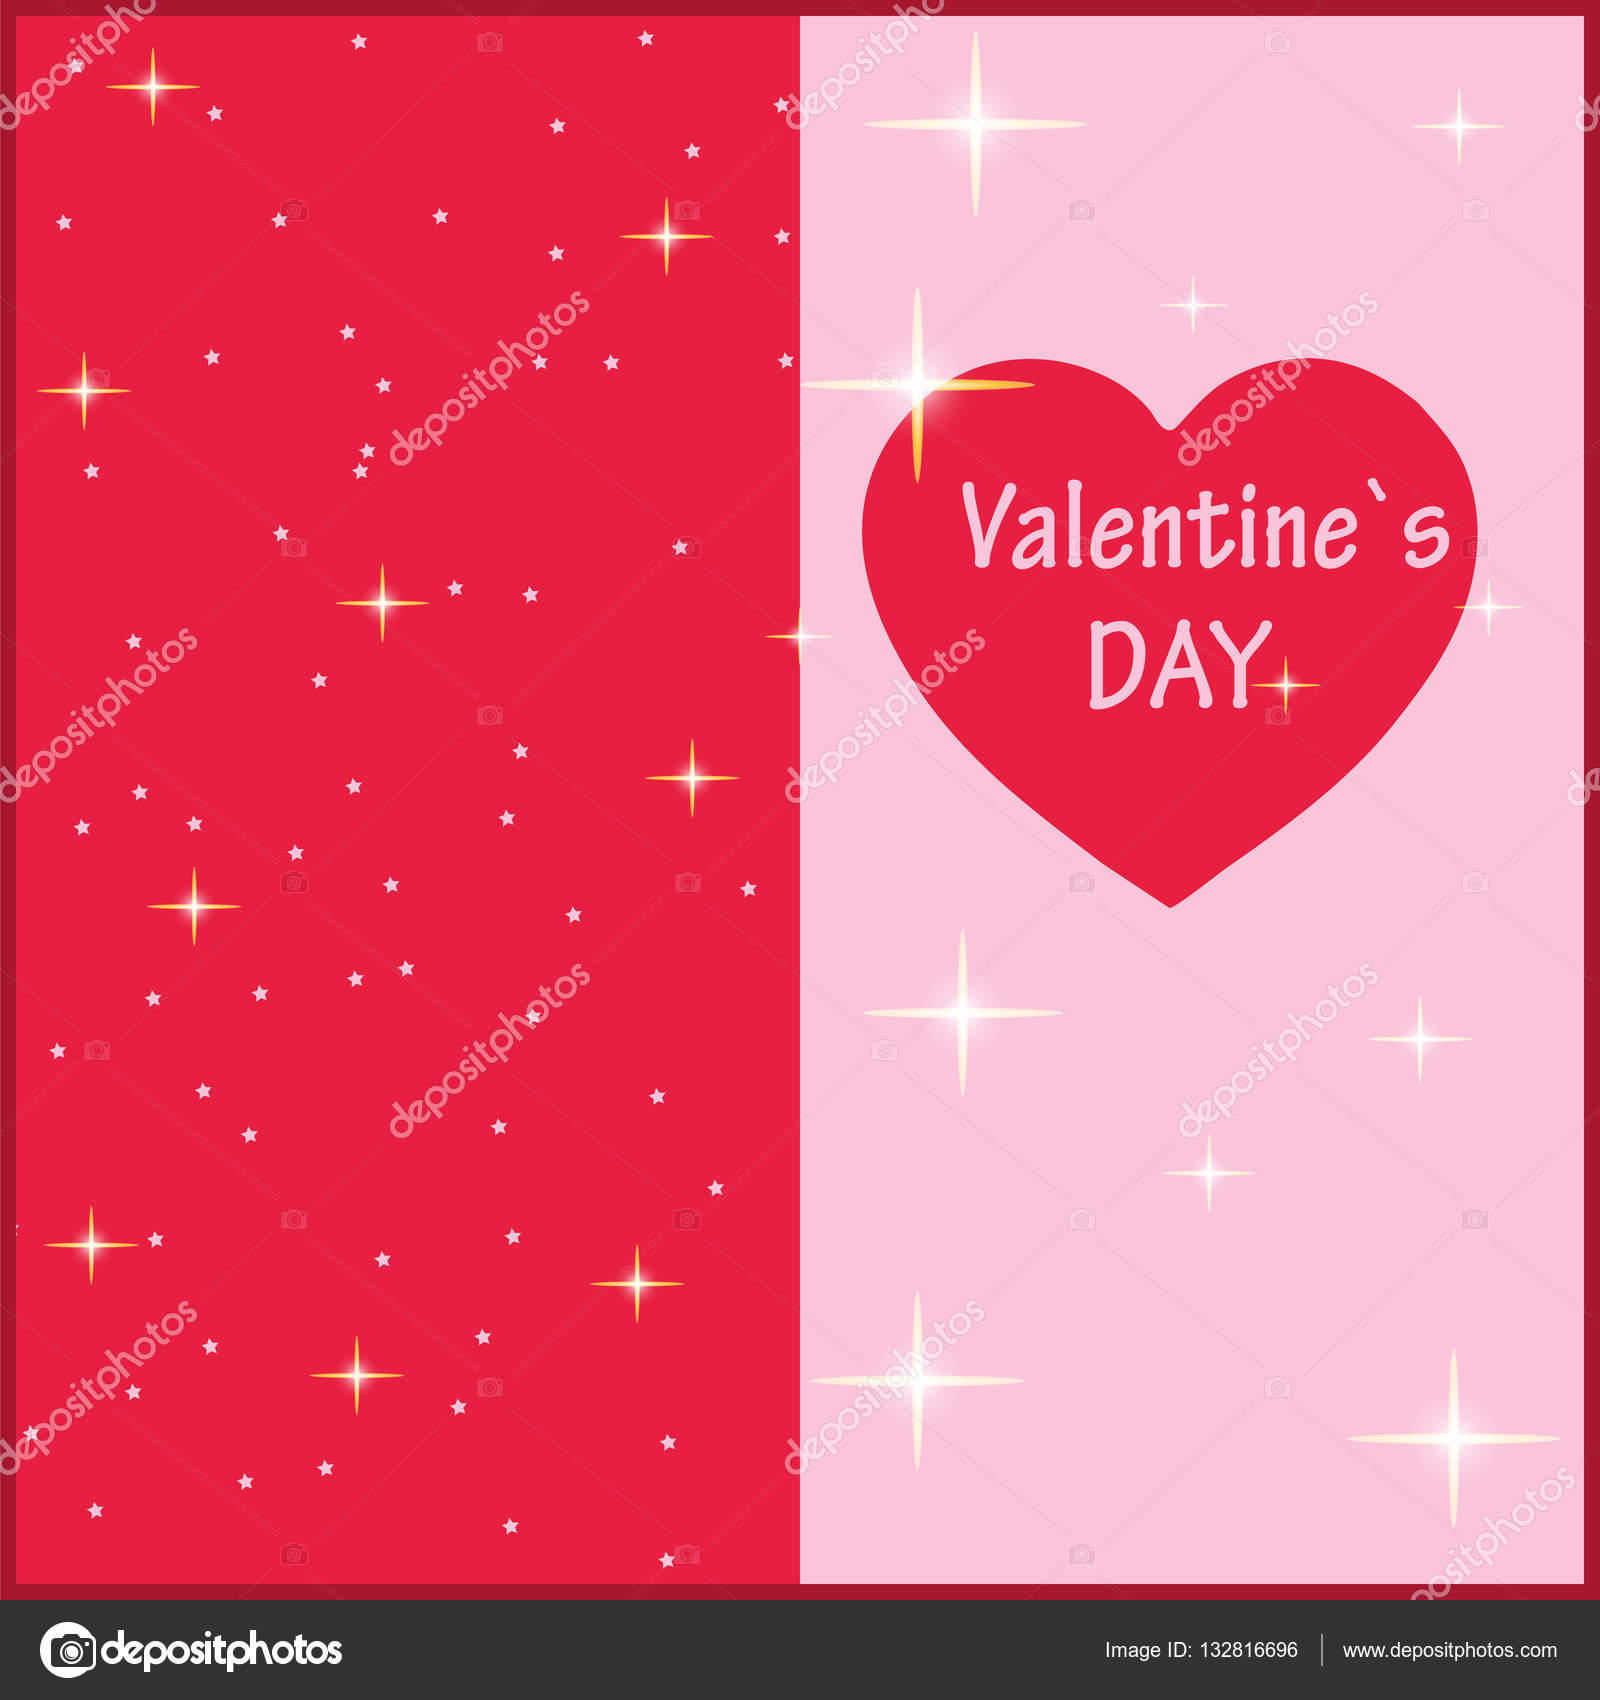 Valentines Day Vector Illustration The Template For Romantic